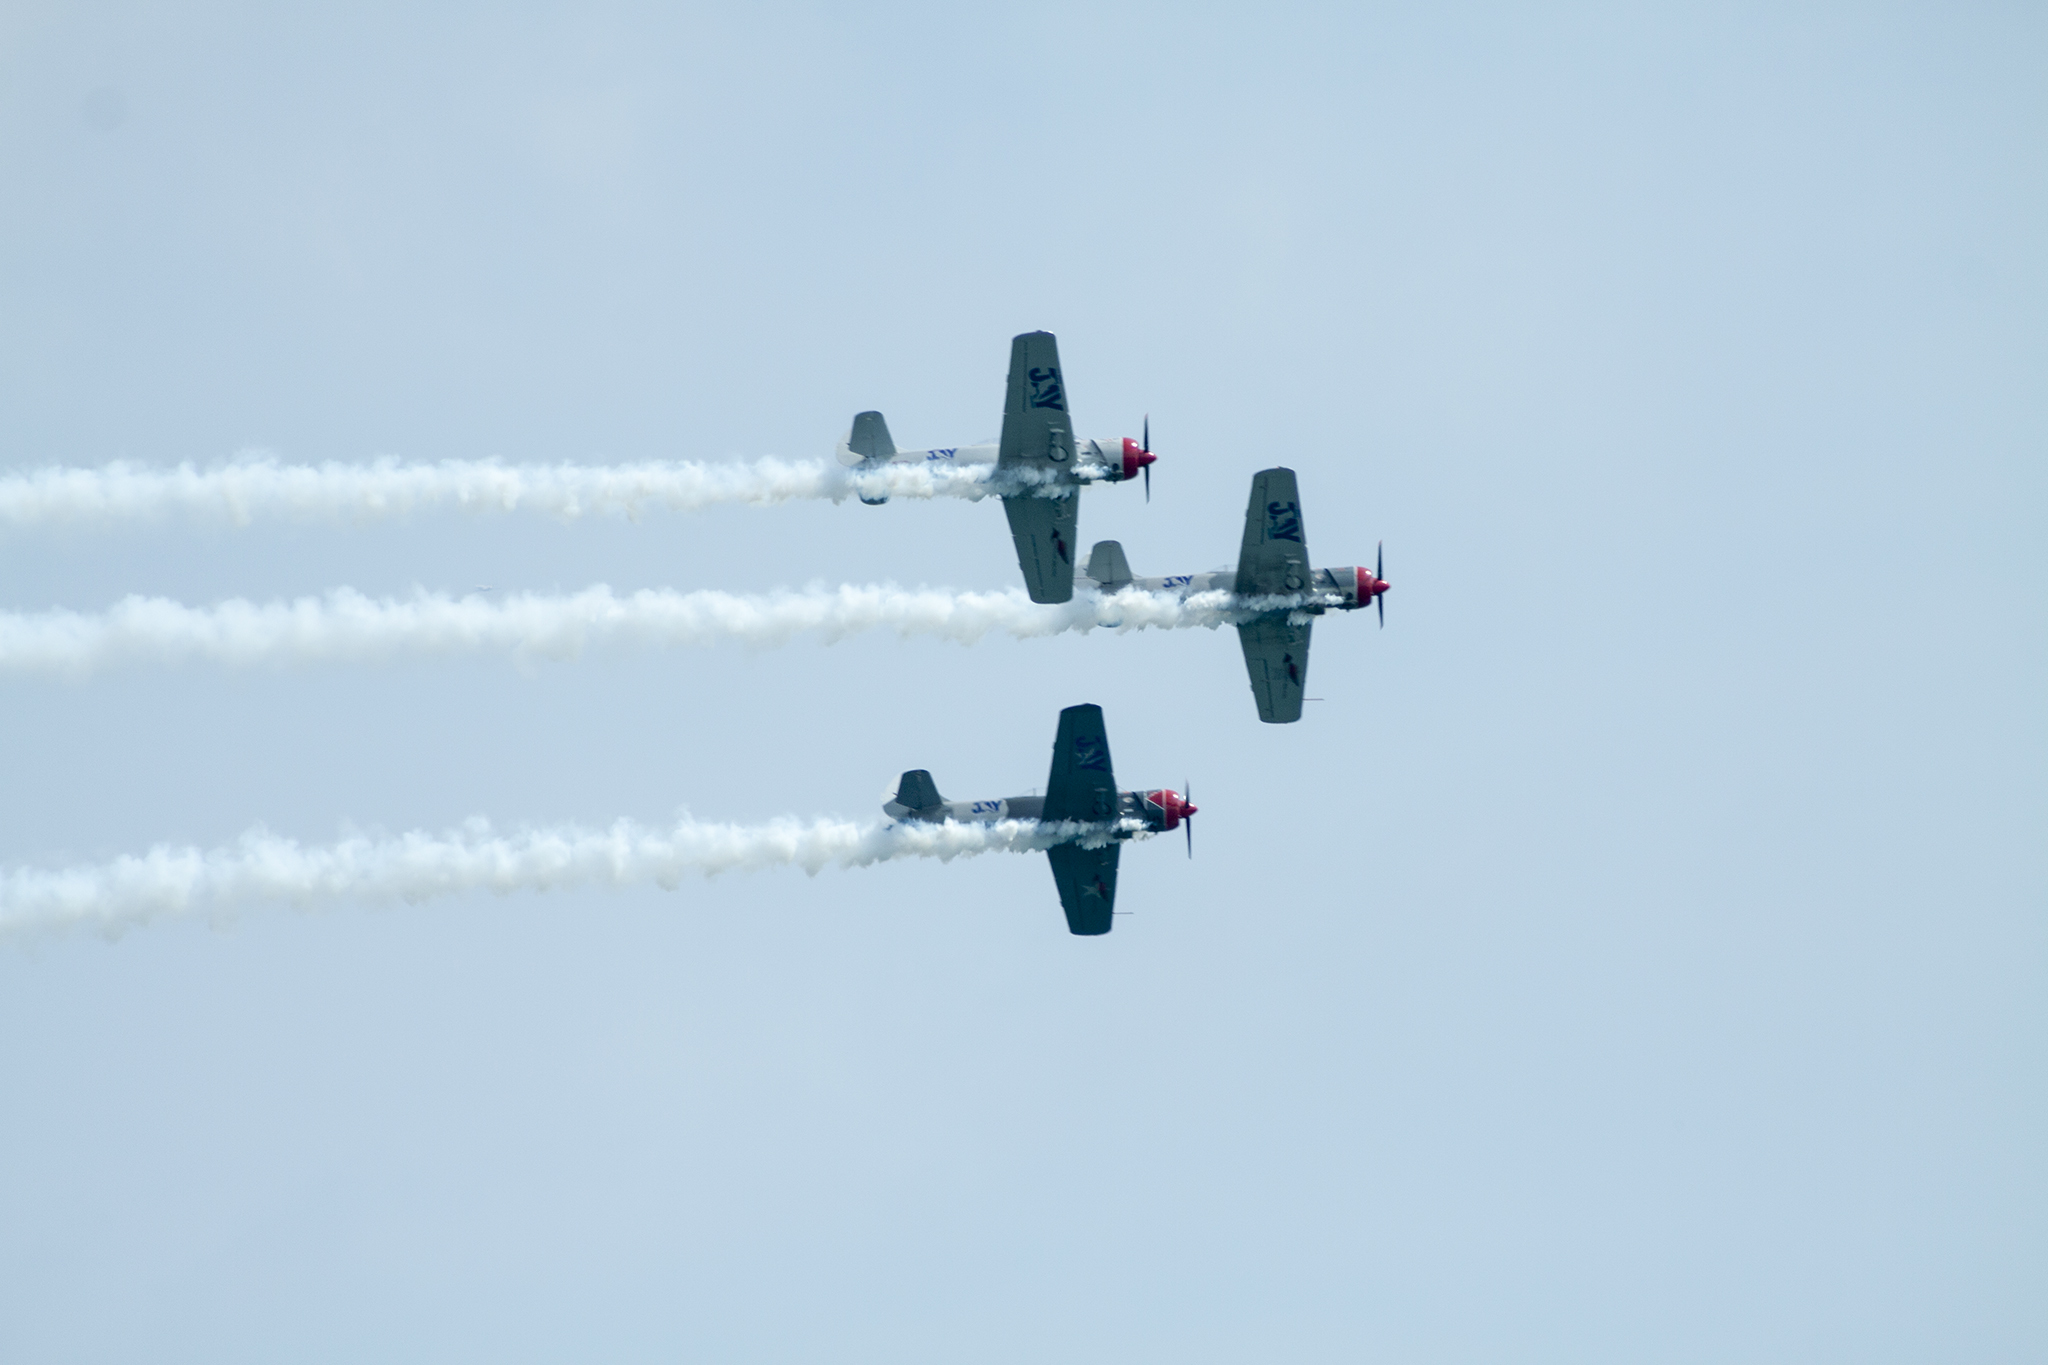 The U.S. Navy Blue Angels, Firebirds Delta Team and more perform aerial stunts at the Chicago Air and Water Show, August 16, 2014.